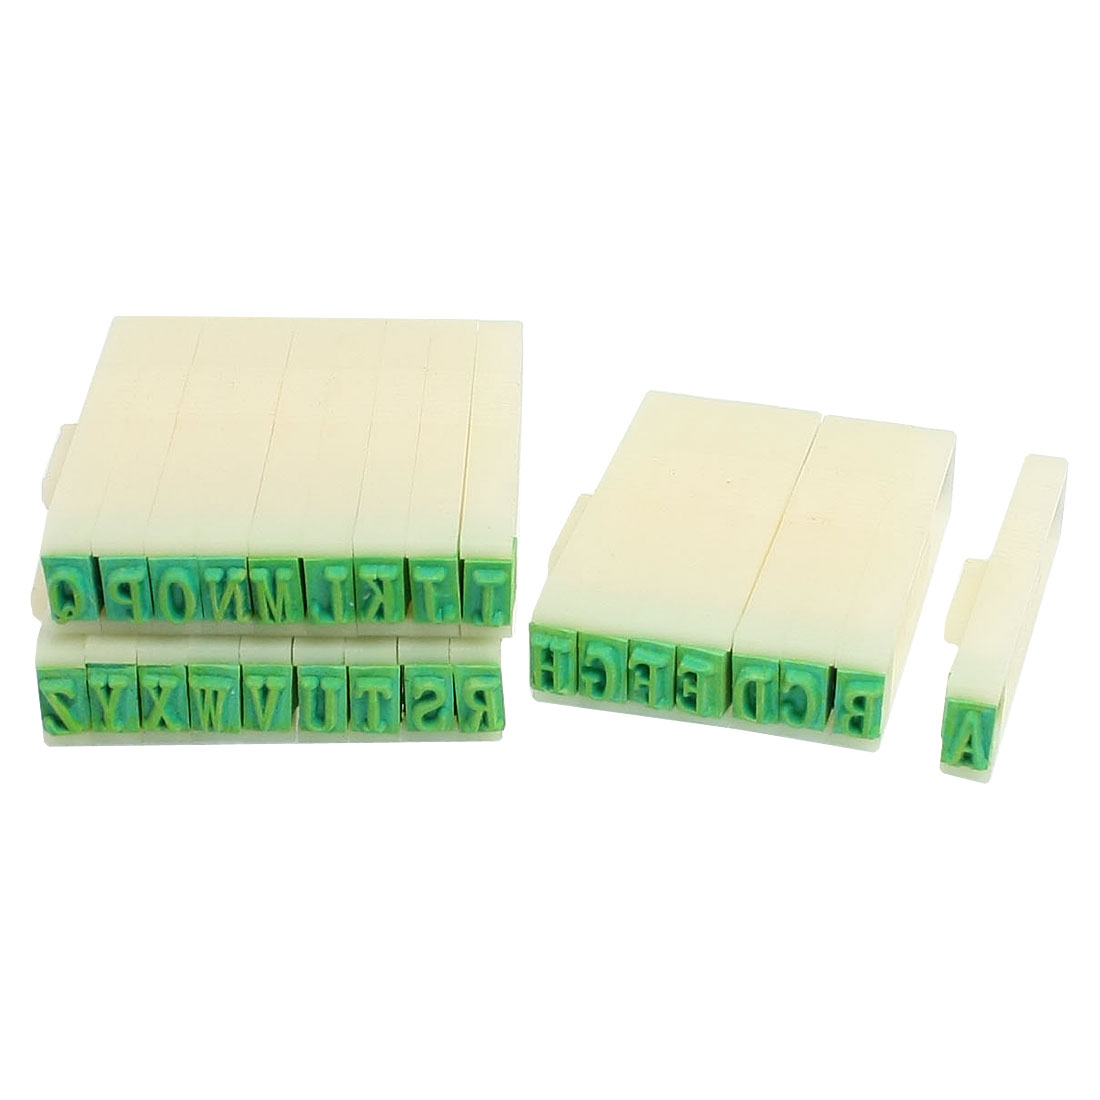 Stationery Plastic Detachable English Multipurpose Number Alphabet Stamp Set Beige